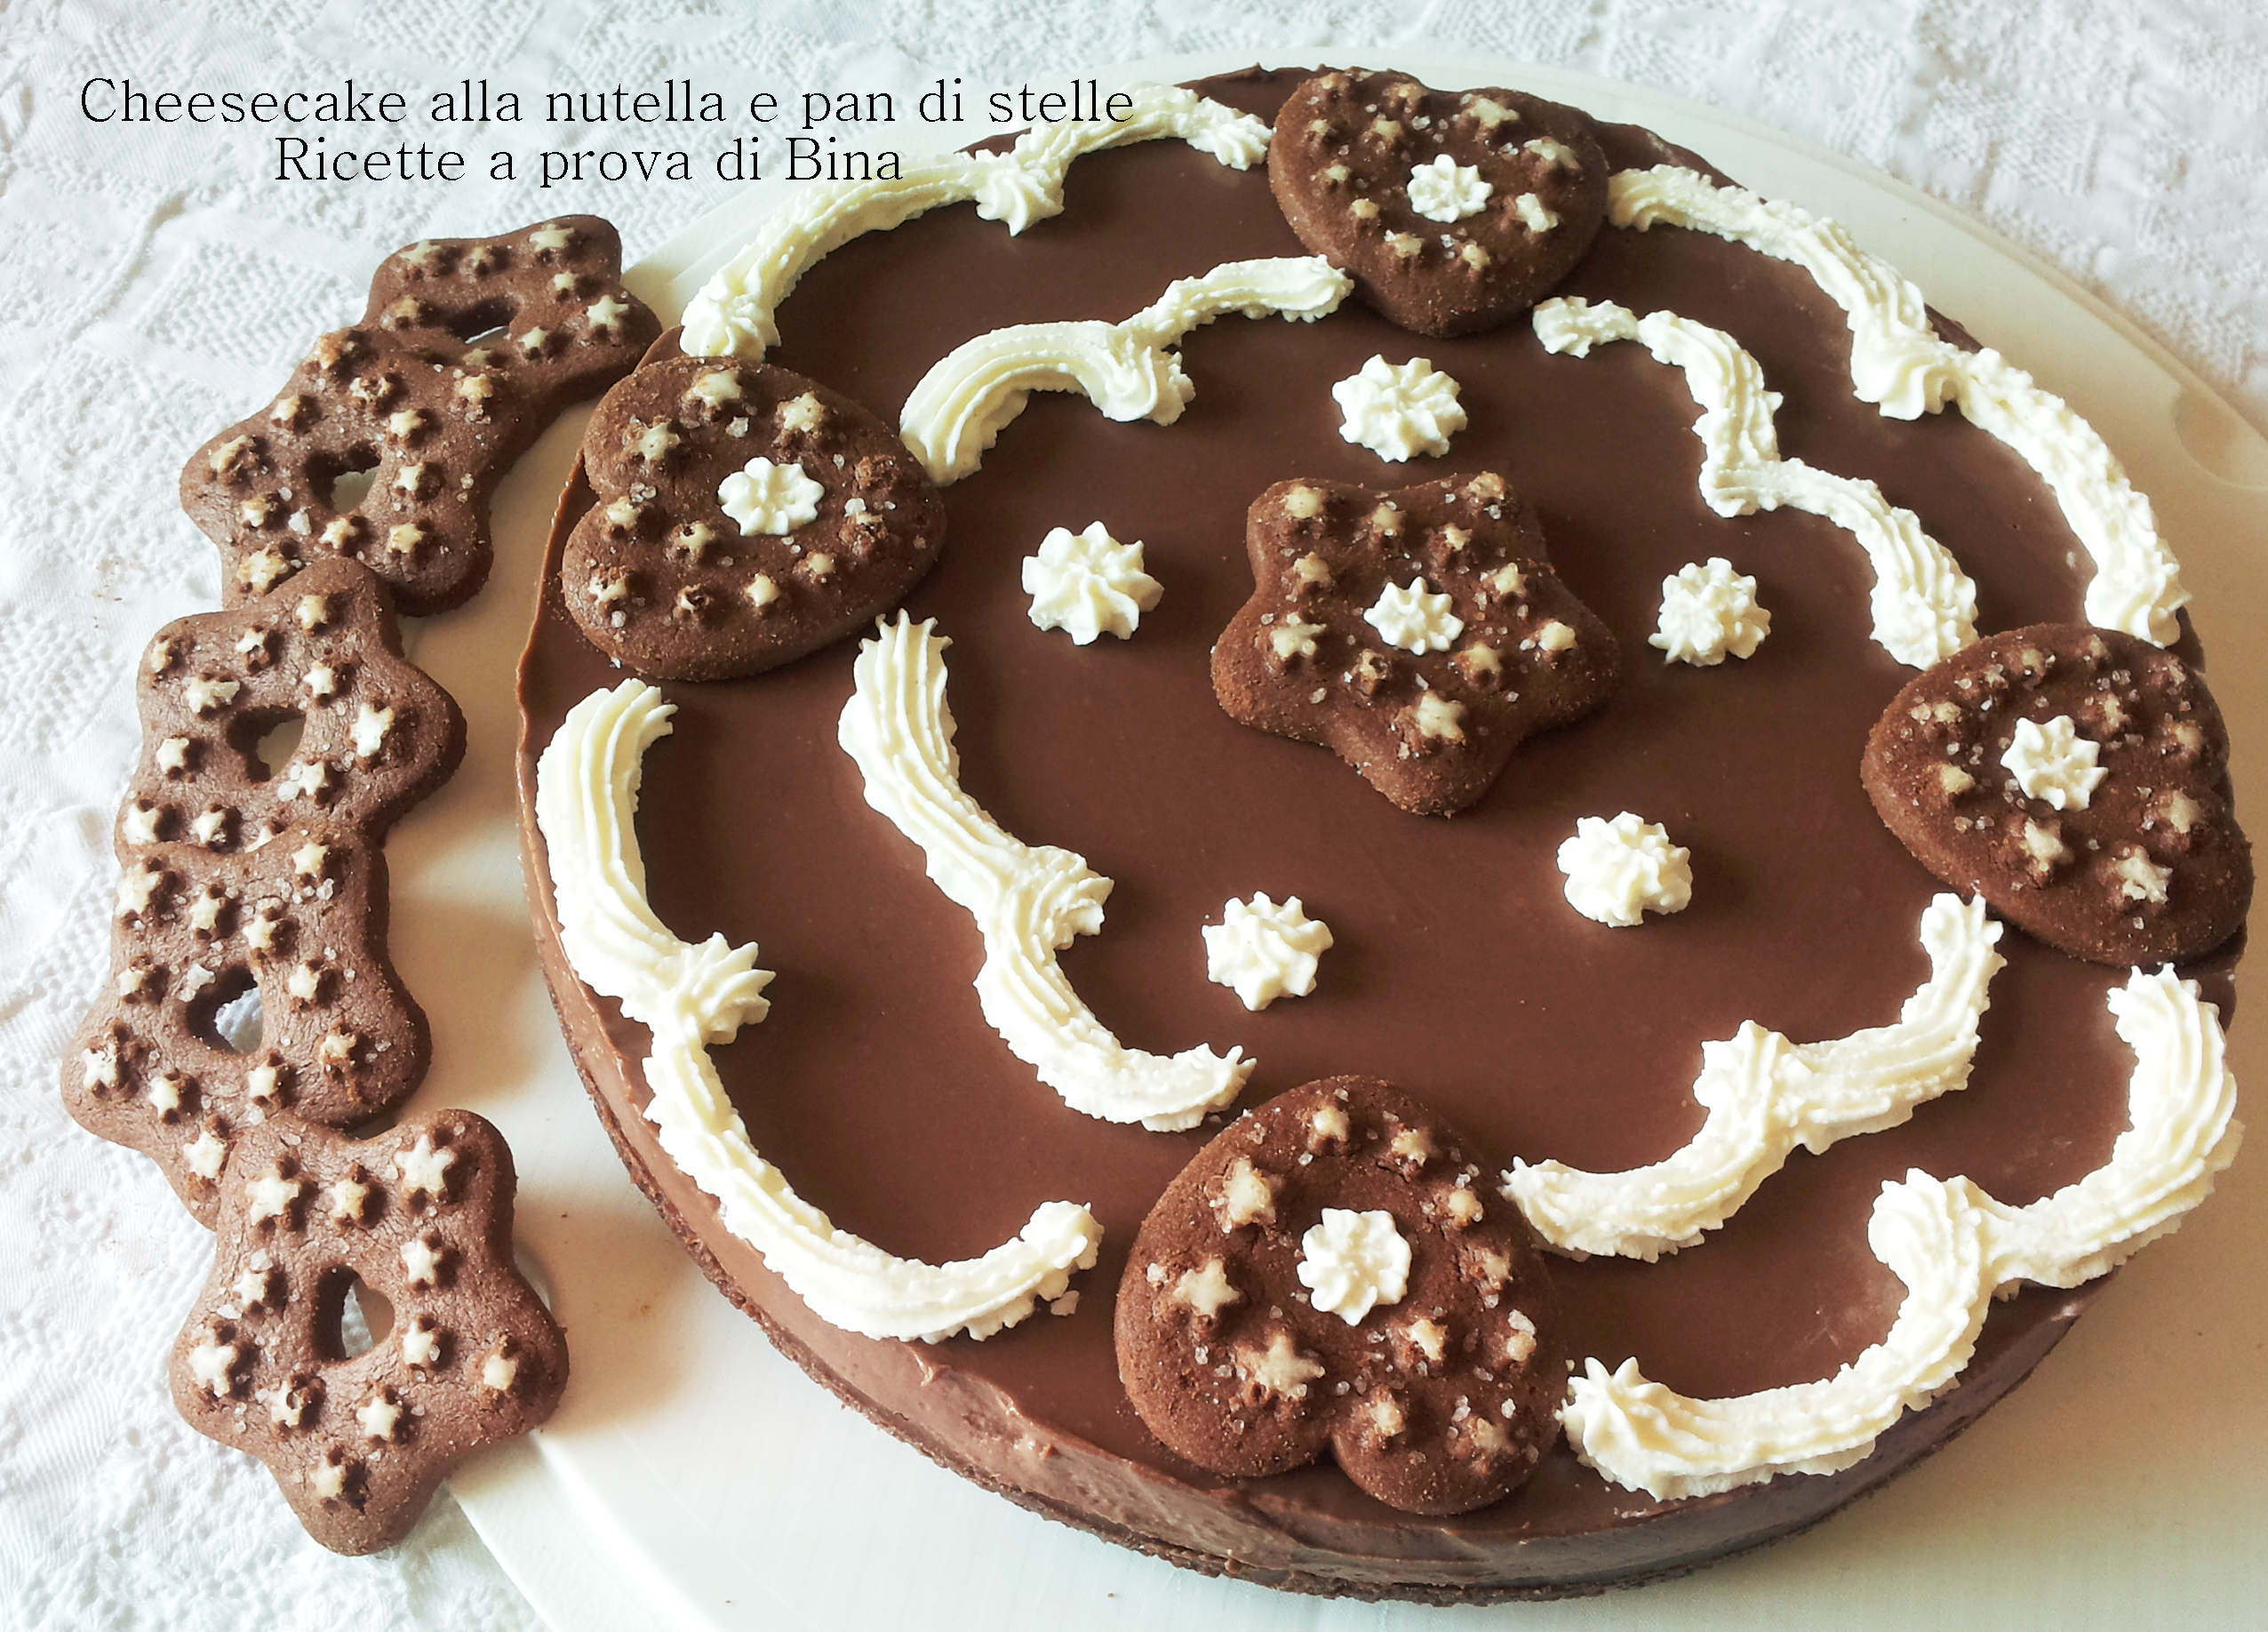 Cheesecake alla nutella e pan di stelle